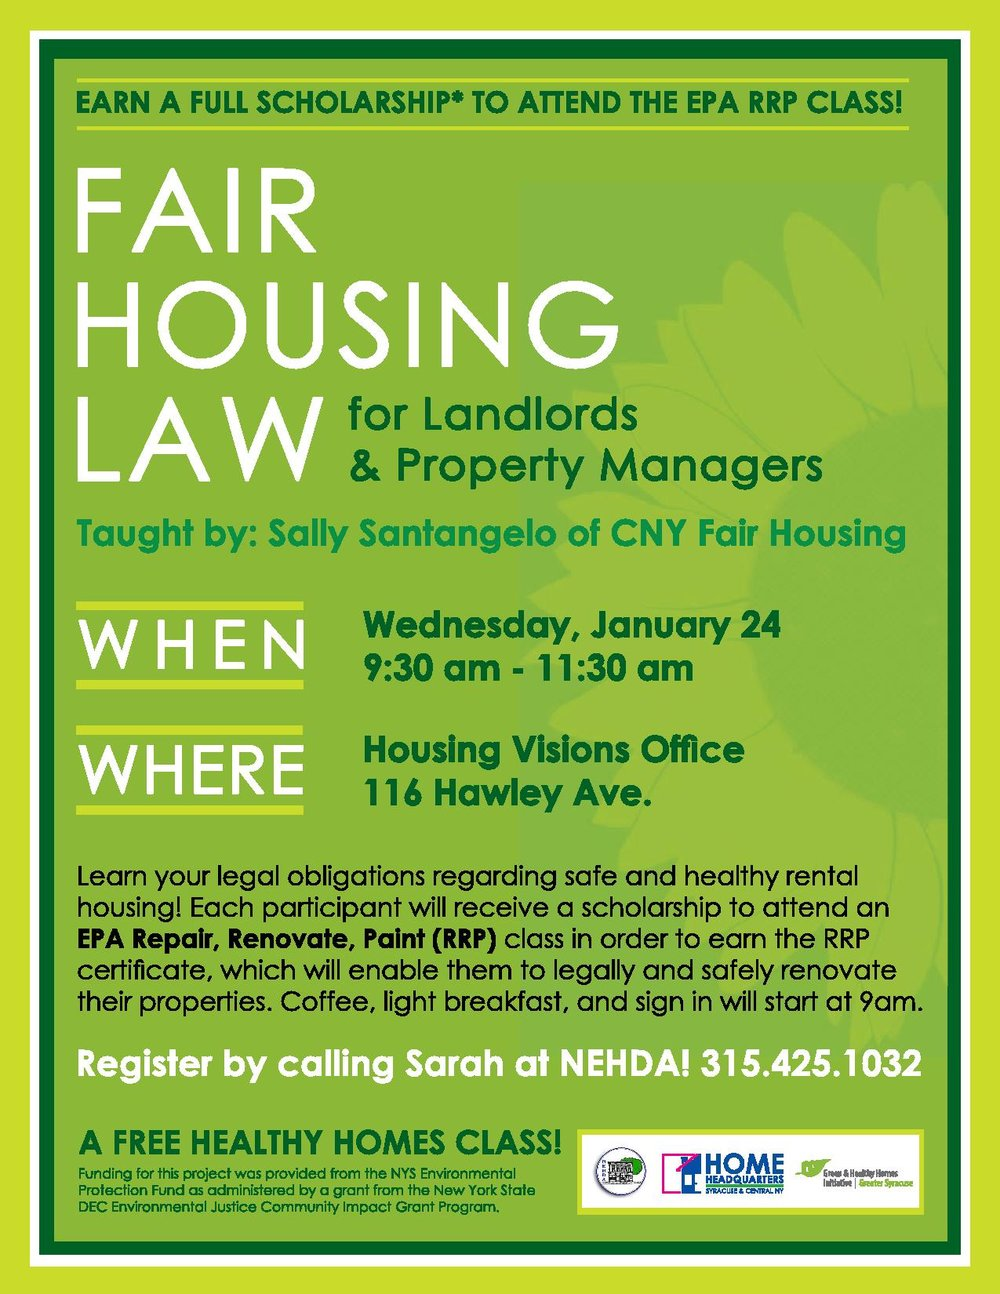 Fair Housing Law Poster 1.24.18-page-001.jpg